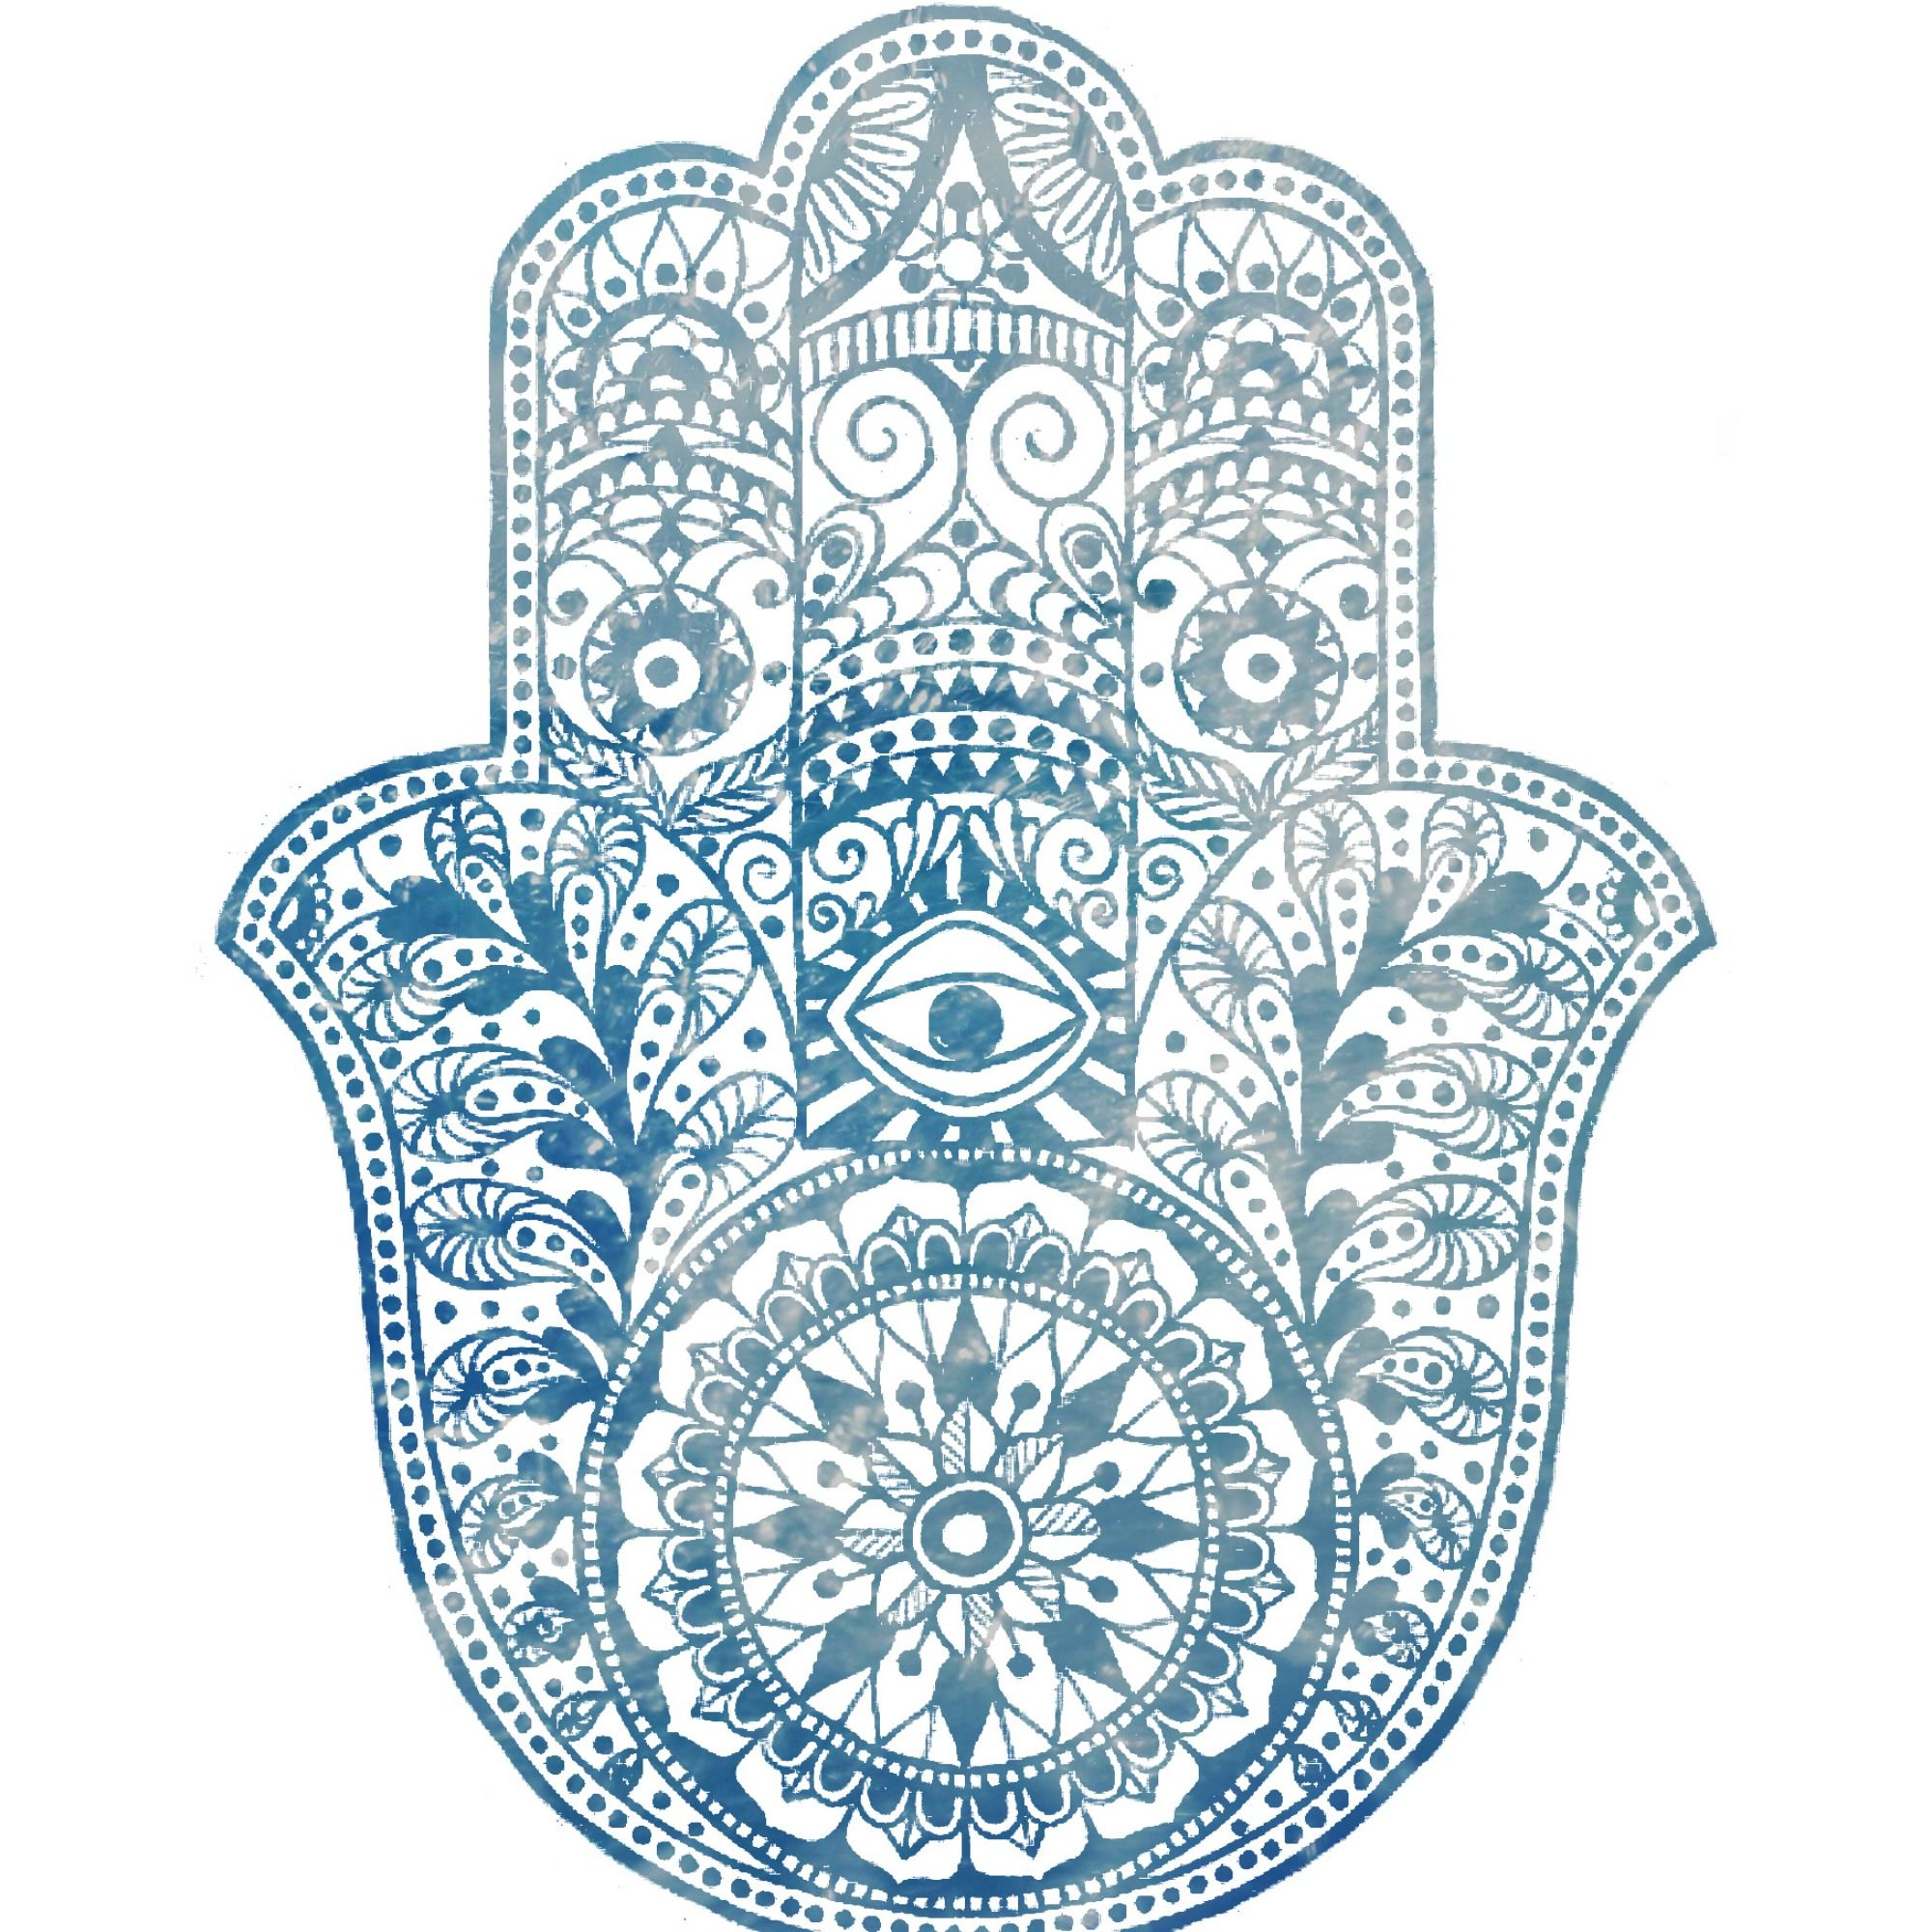 Hamsa Iphone Background Como Desenhar Maos Tatuagem Costela Pelicula De Unha